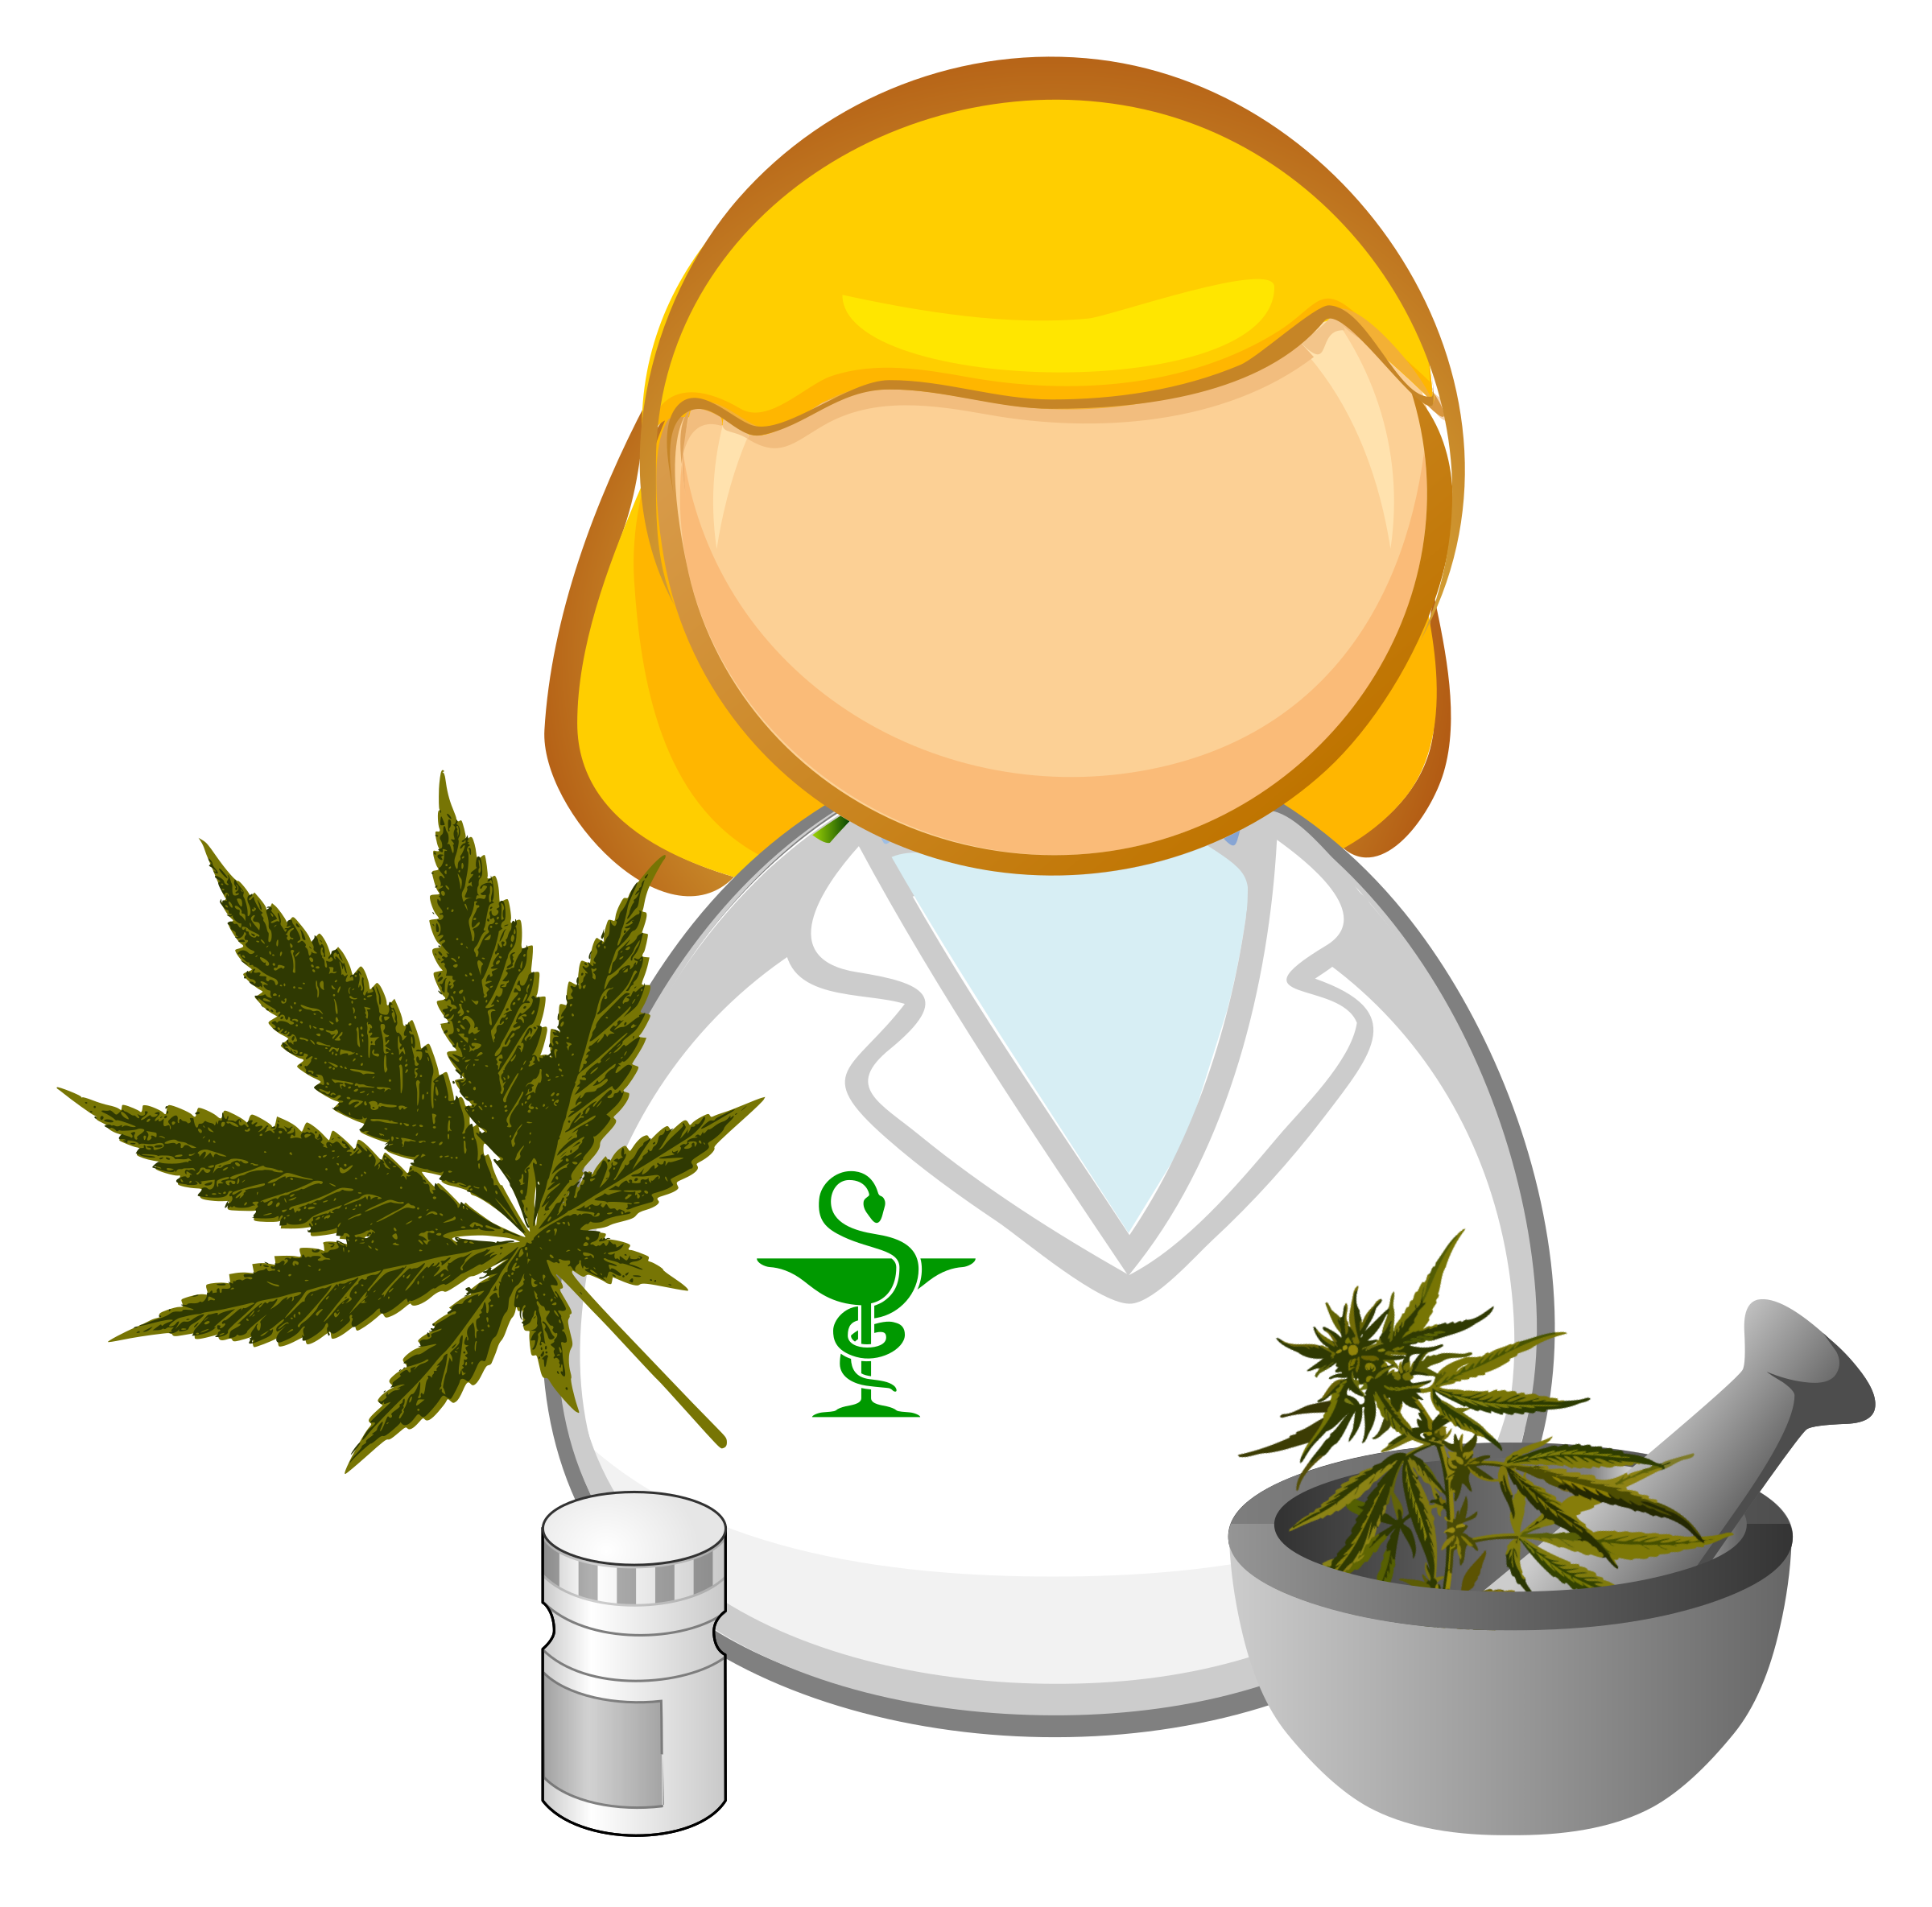 Medical cannabis icons png. Clipart computer pharmacist